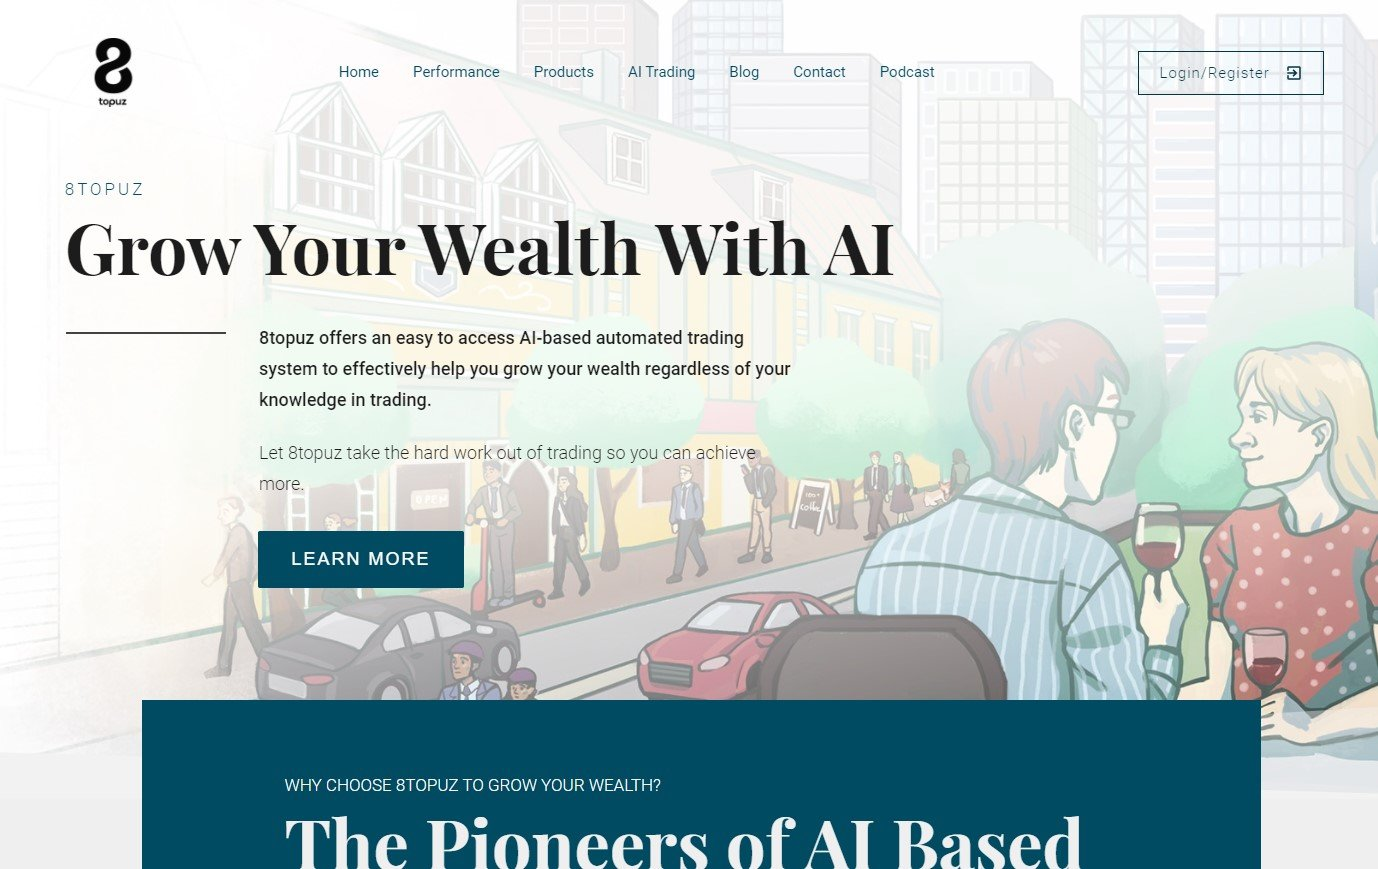 Grow Your Wealth With AI